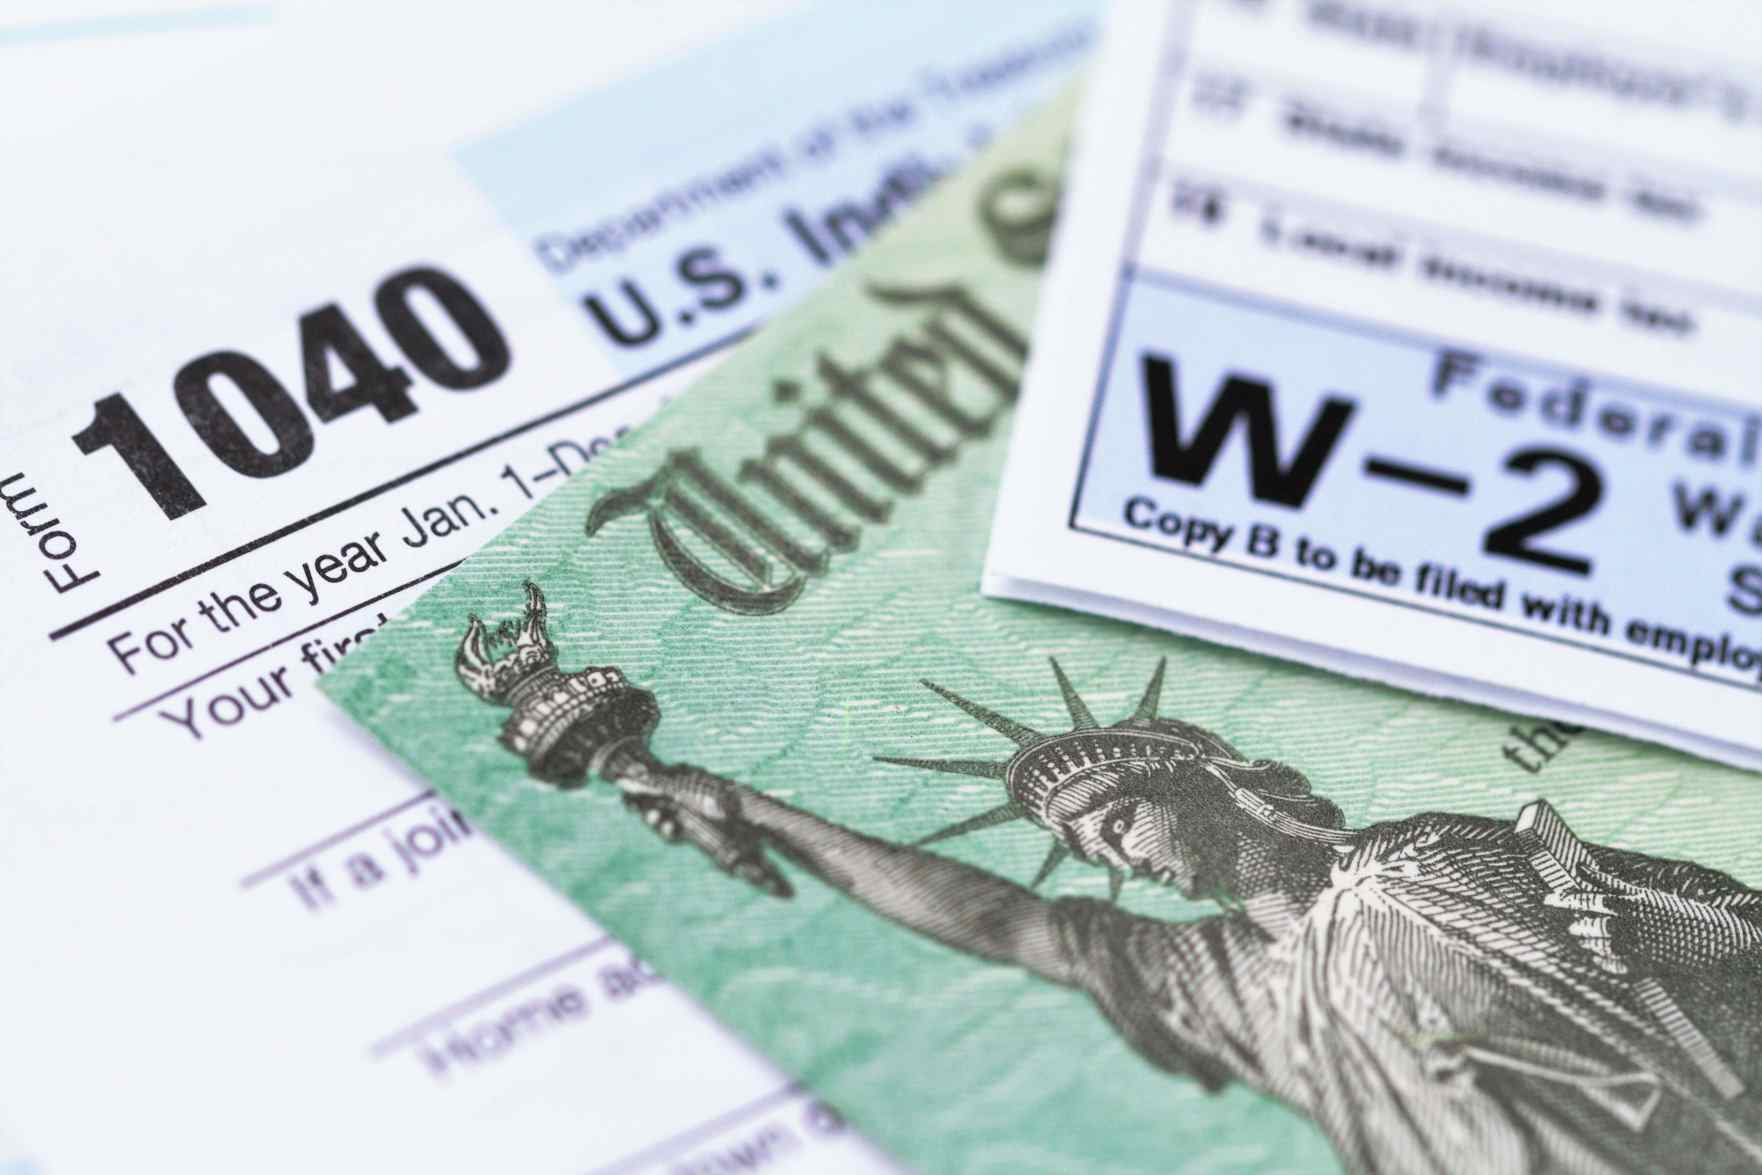 1040 and W2 tax forms